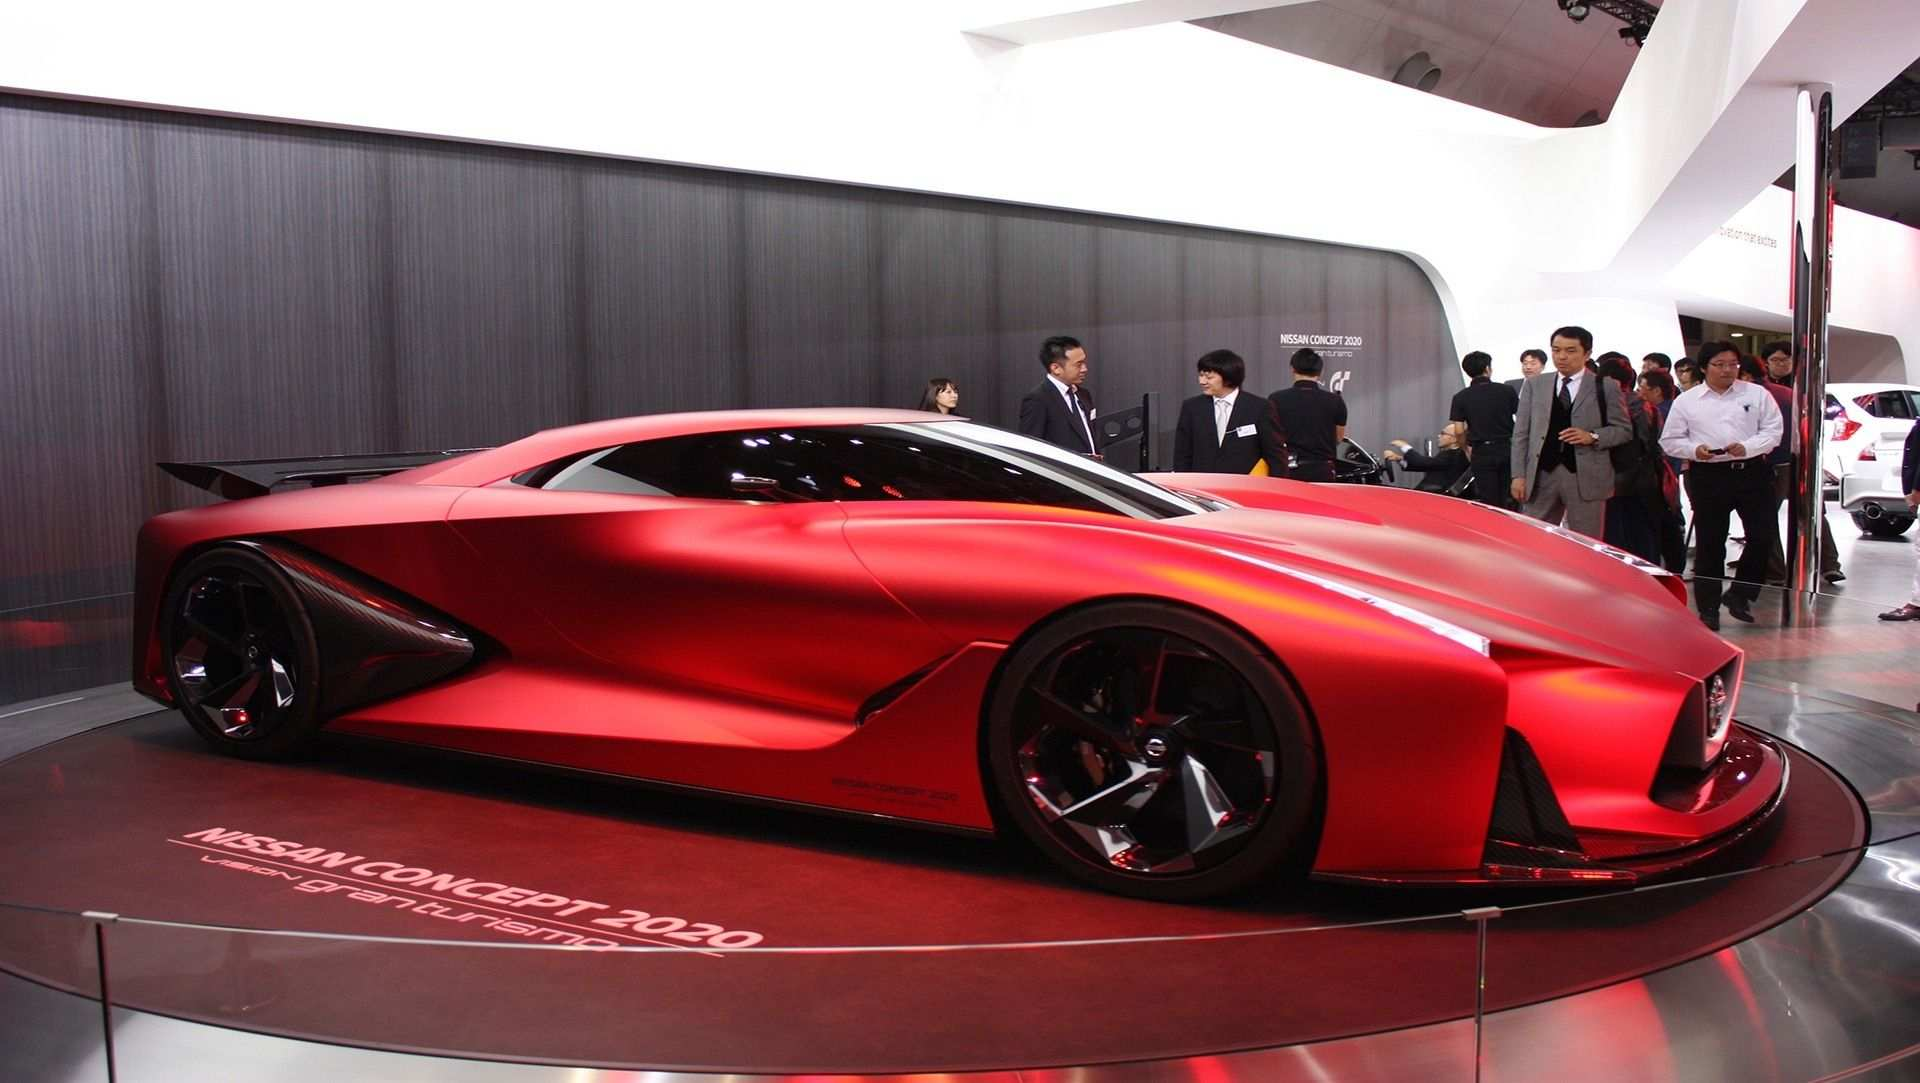 51 Concept of Nissan Gtr Nismo 2020 Images for Nissan Gtr Nismo 2020